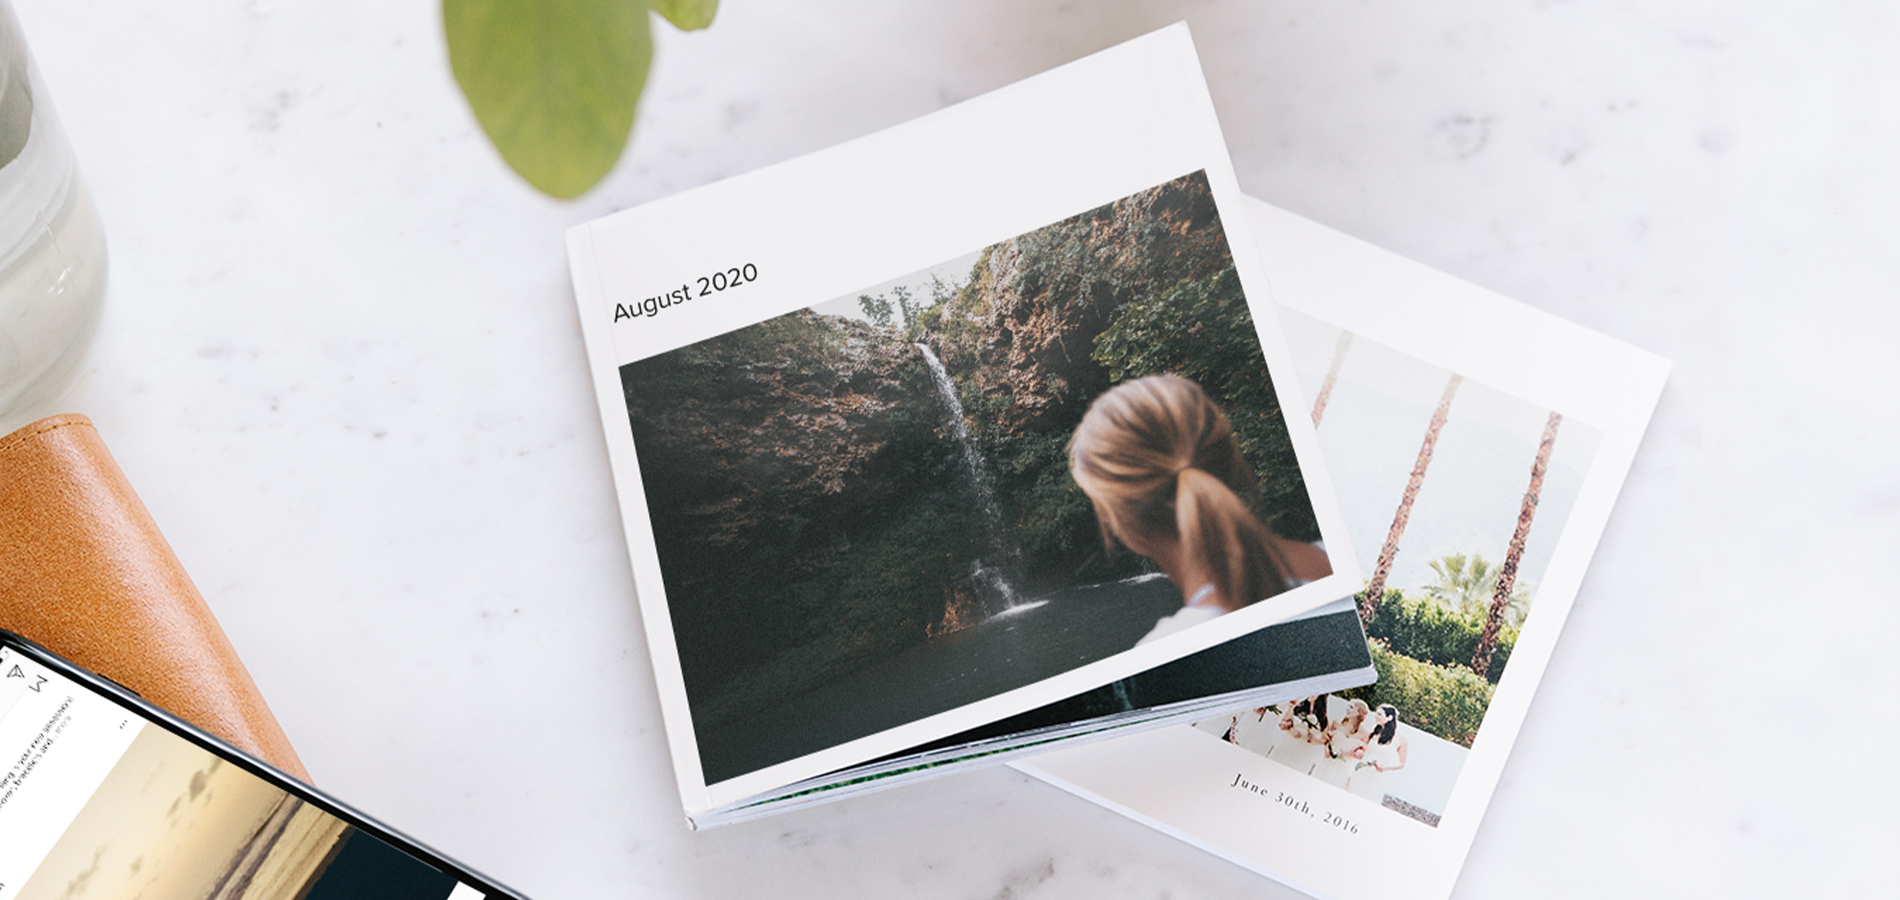 easy photo book titled August 2020 and featuring waterfall on the cover